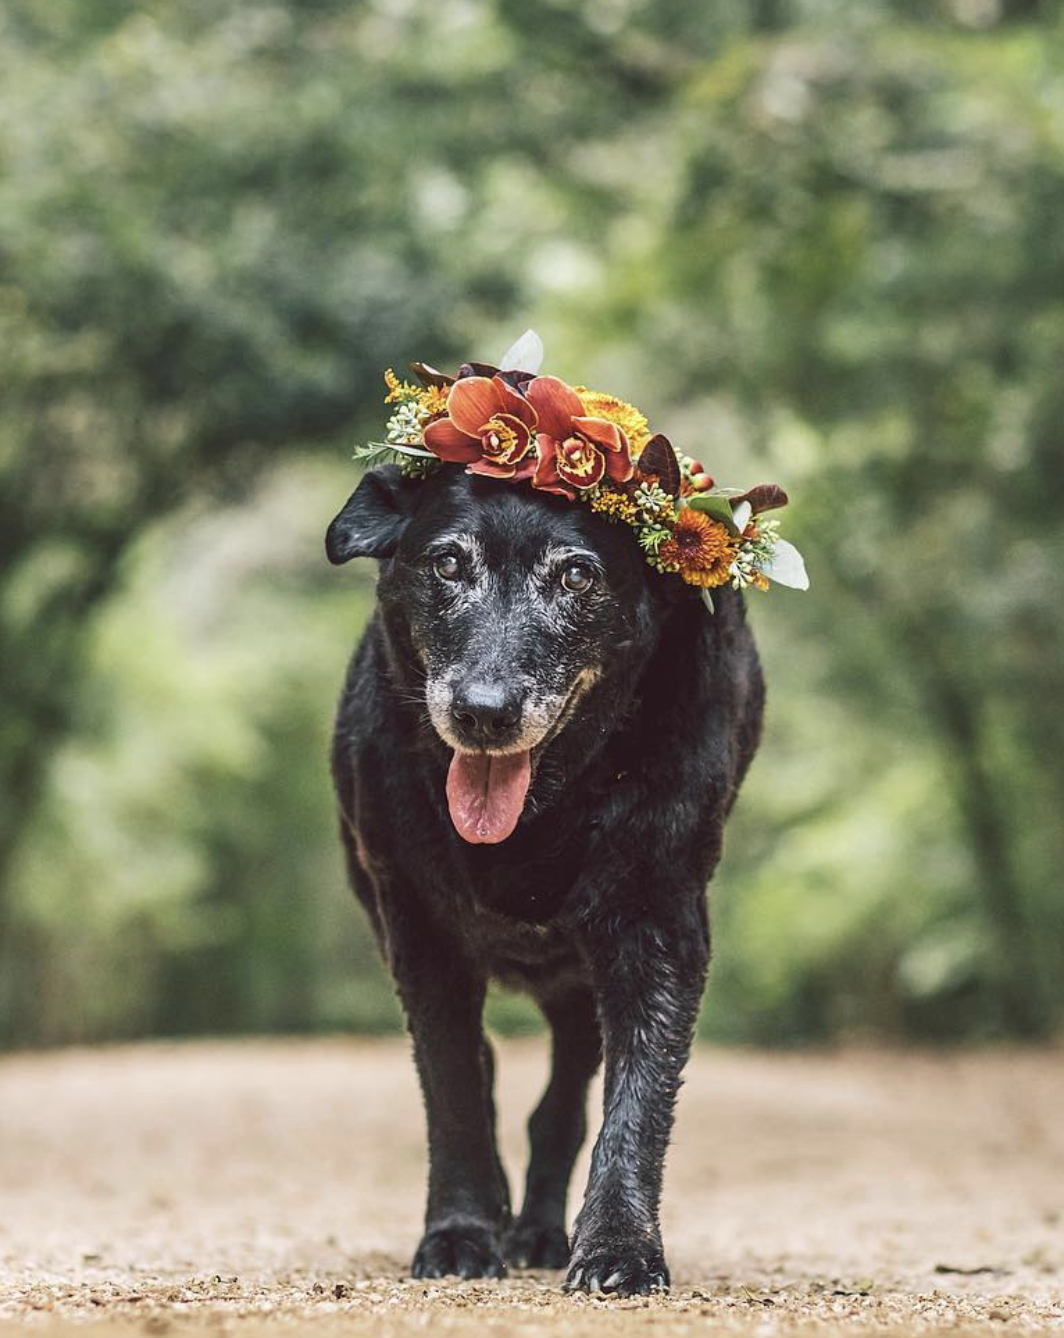 Our flower crown sessions officially began with Joe, the 18yr old Black Lab. Click this link to hear his story.